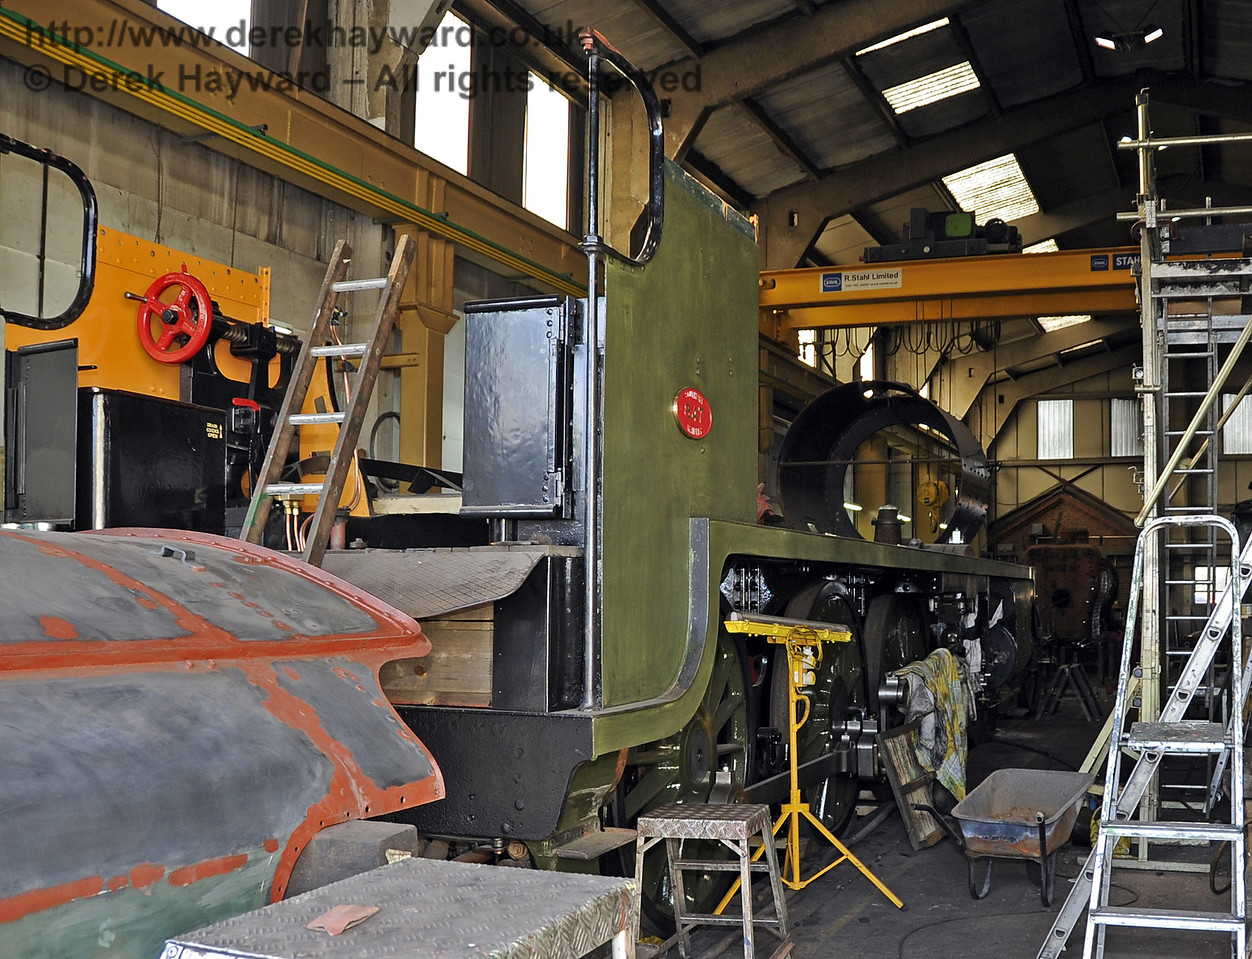 The frames for 847 inside Sheffield Park Workshops.  06.04.2013  6717